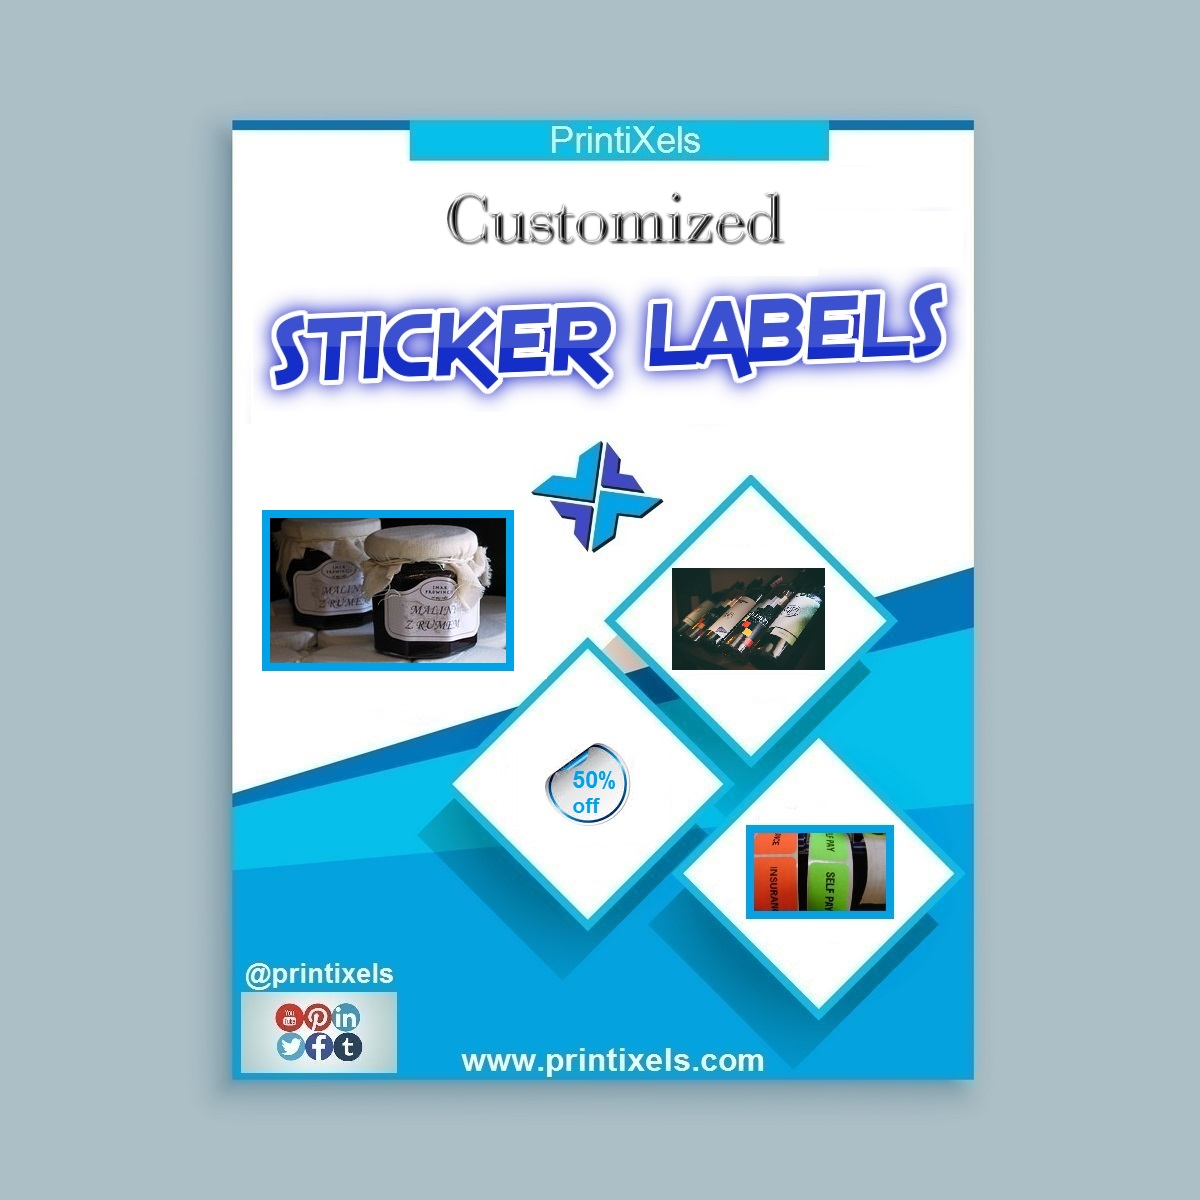 Where To Print Sticker Labels